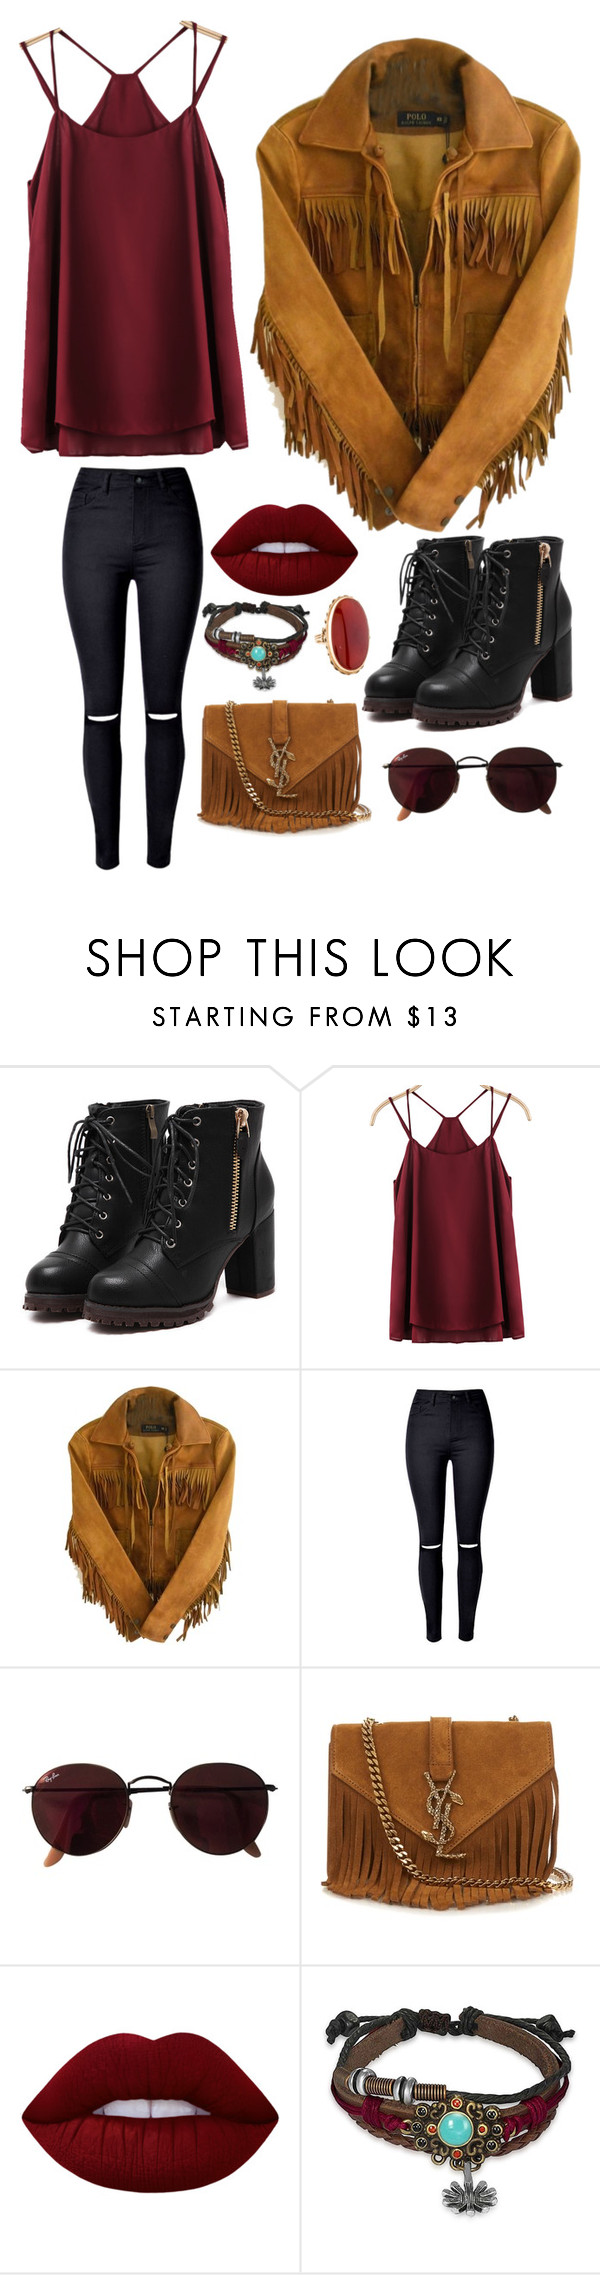 """340"" by minor-inconvenience ❤ liked on Polyvore featuring Polo Ralph Lauren, WithChic, Ray-Ban, Yves Saint Laurent, Lime Crime, Bling Jewelry, cute, fringe, Heels and maroon"